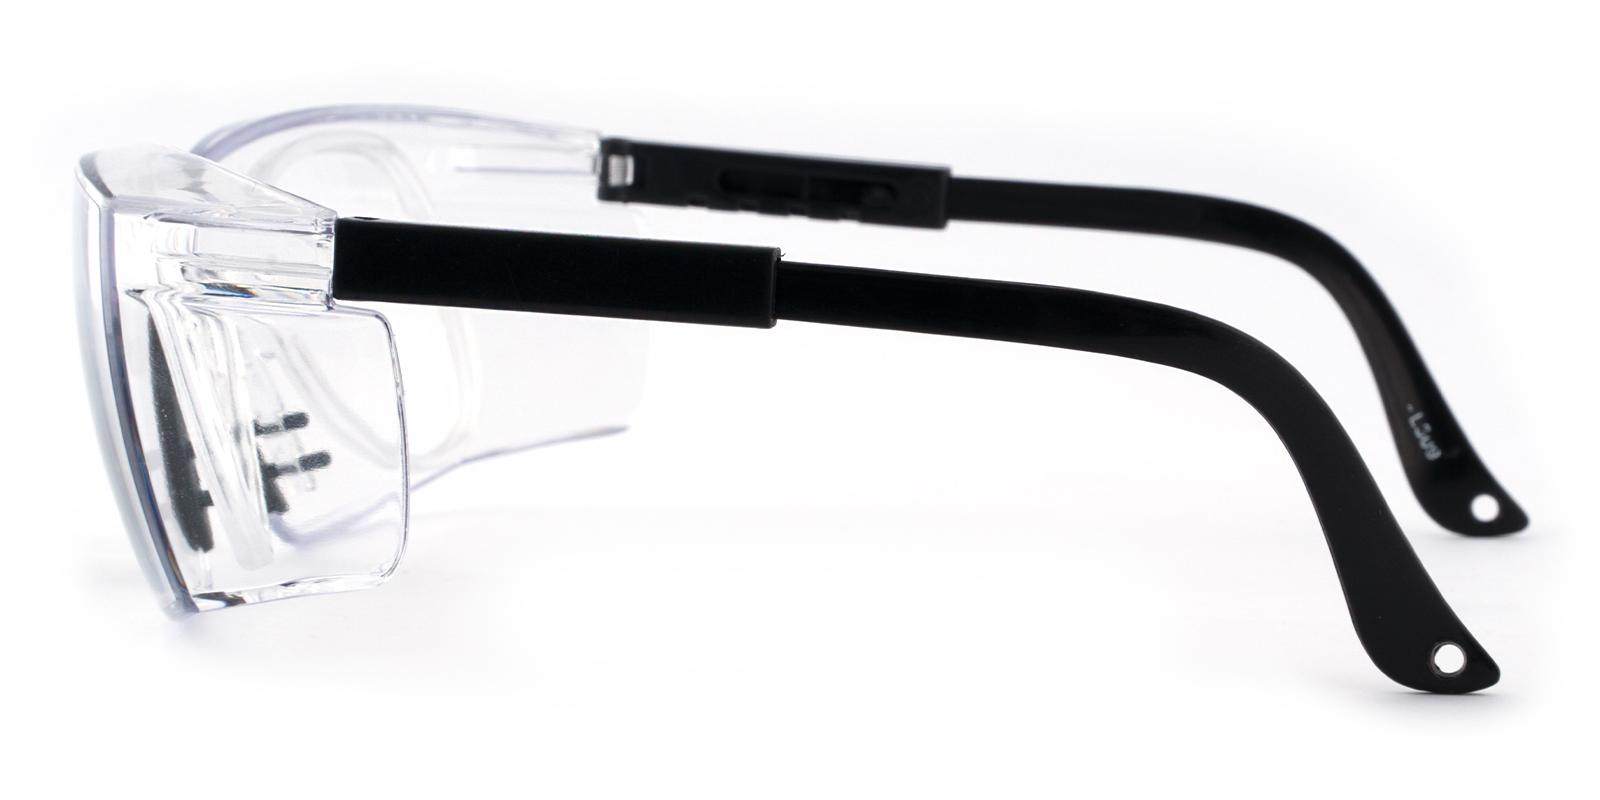 Gates Mills Black Plastic SportsGlasses Frames from ABBE Glasses